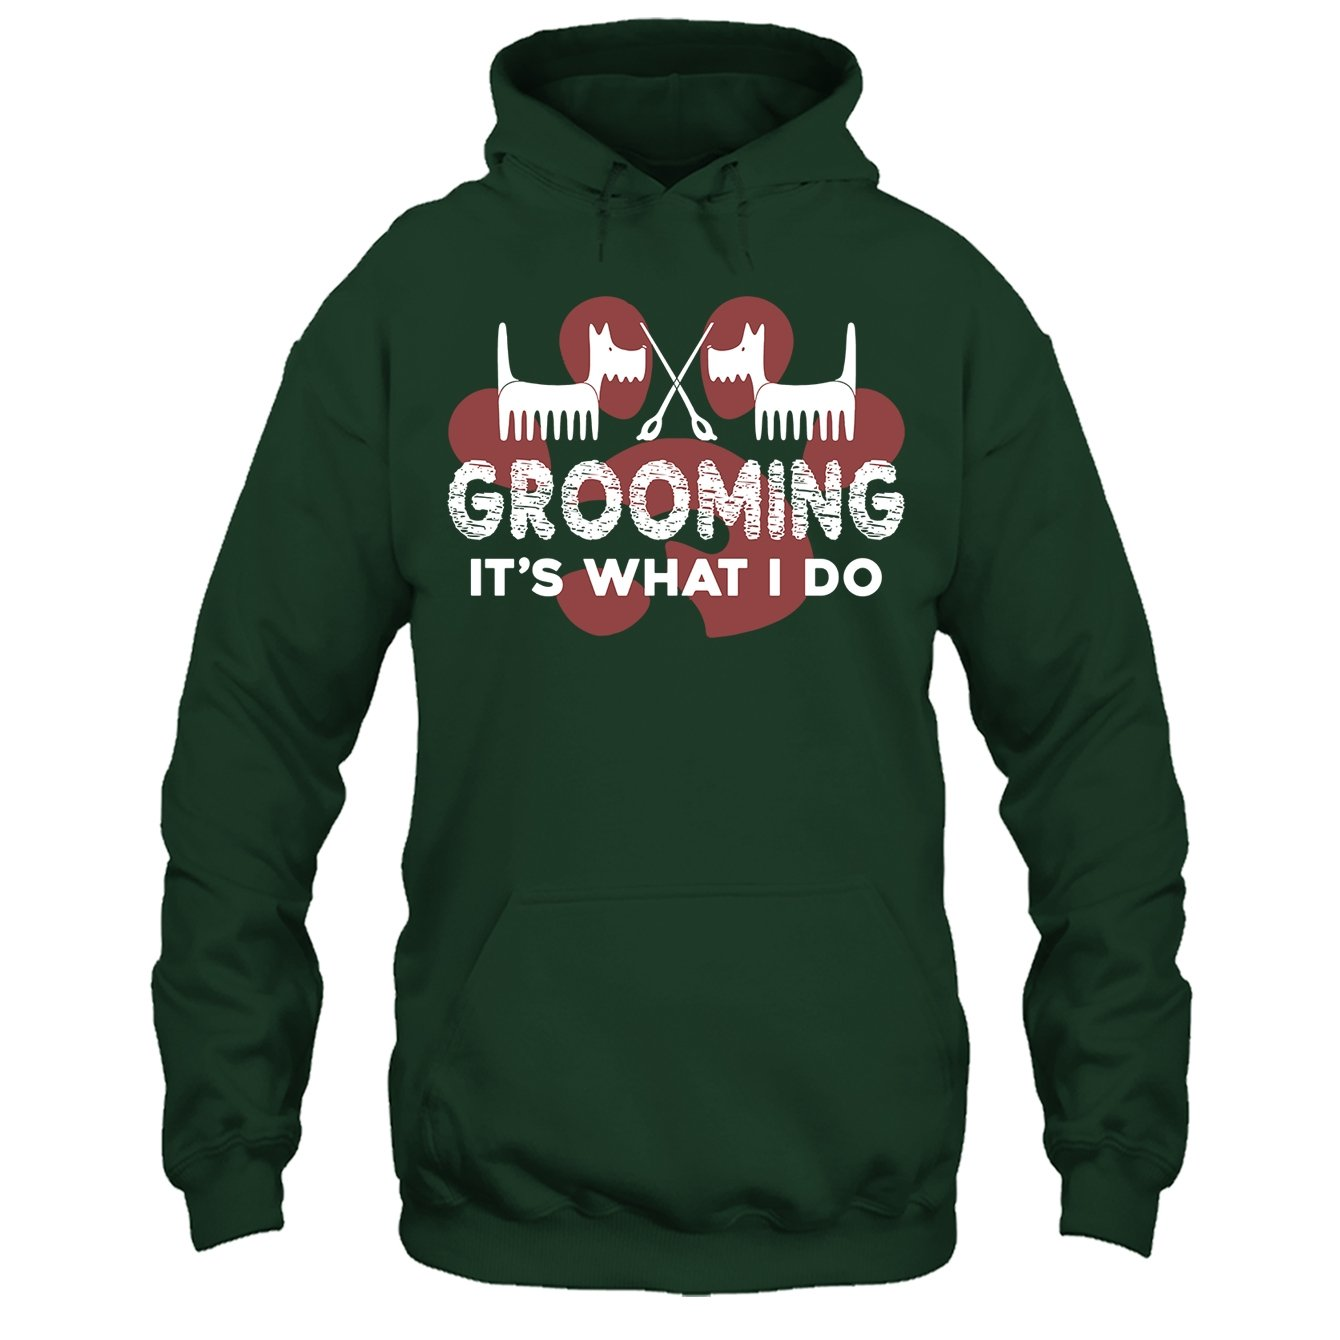 Grooming Its What I Do Tshirt Addblue Dog Grooming Cool Tee Shirt